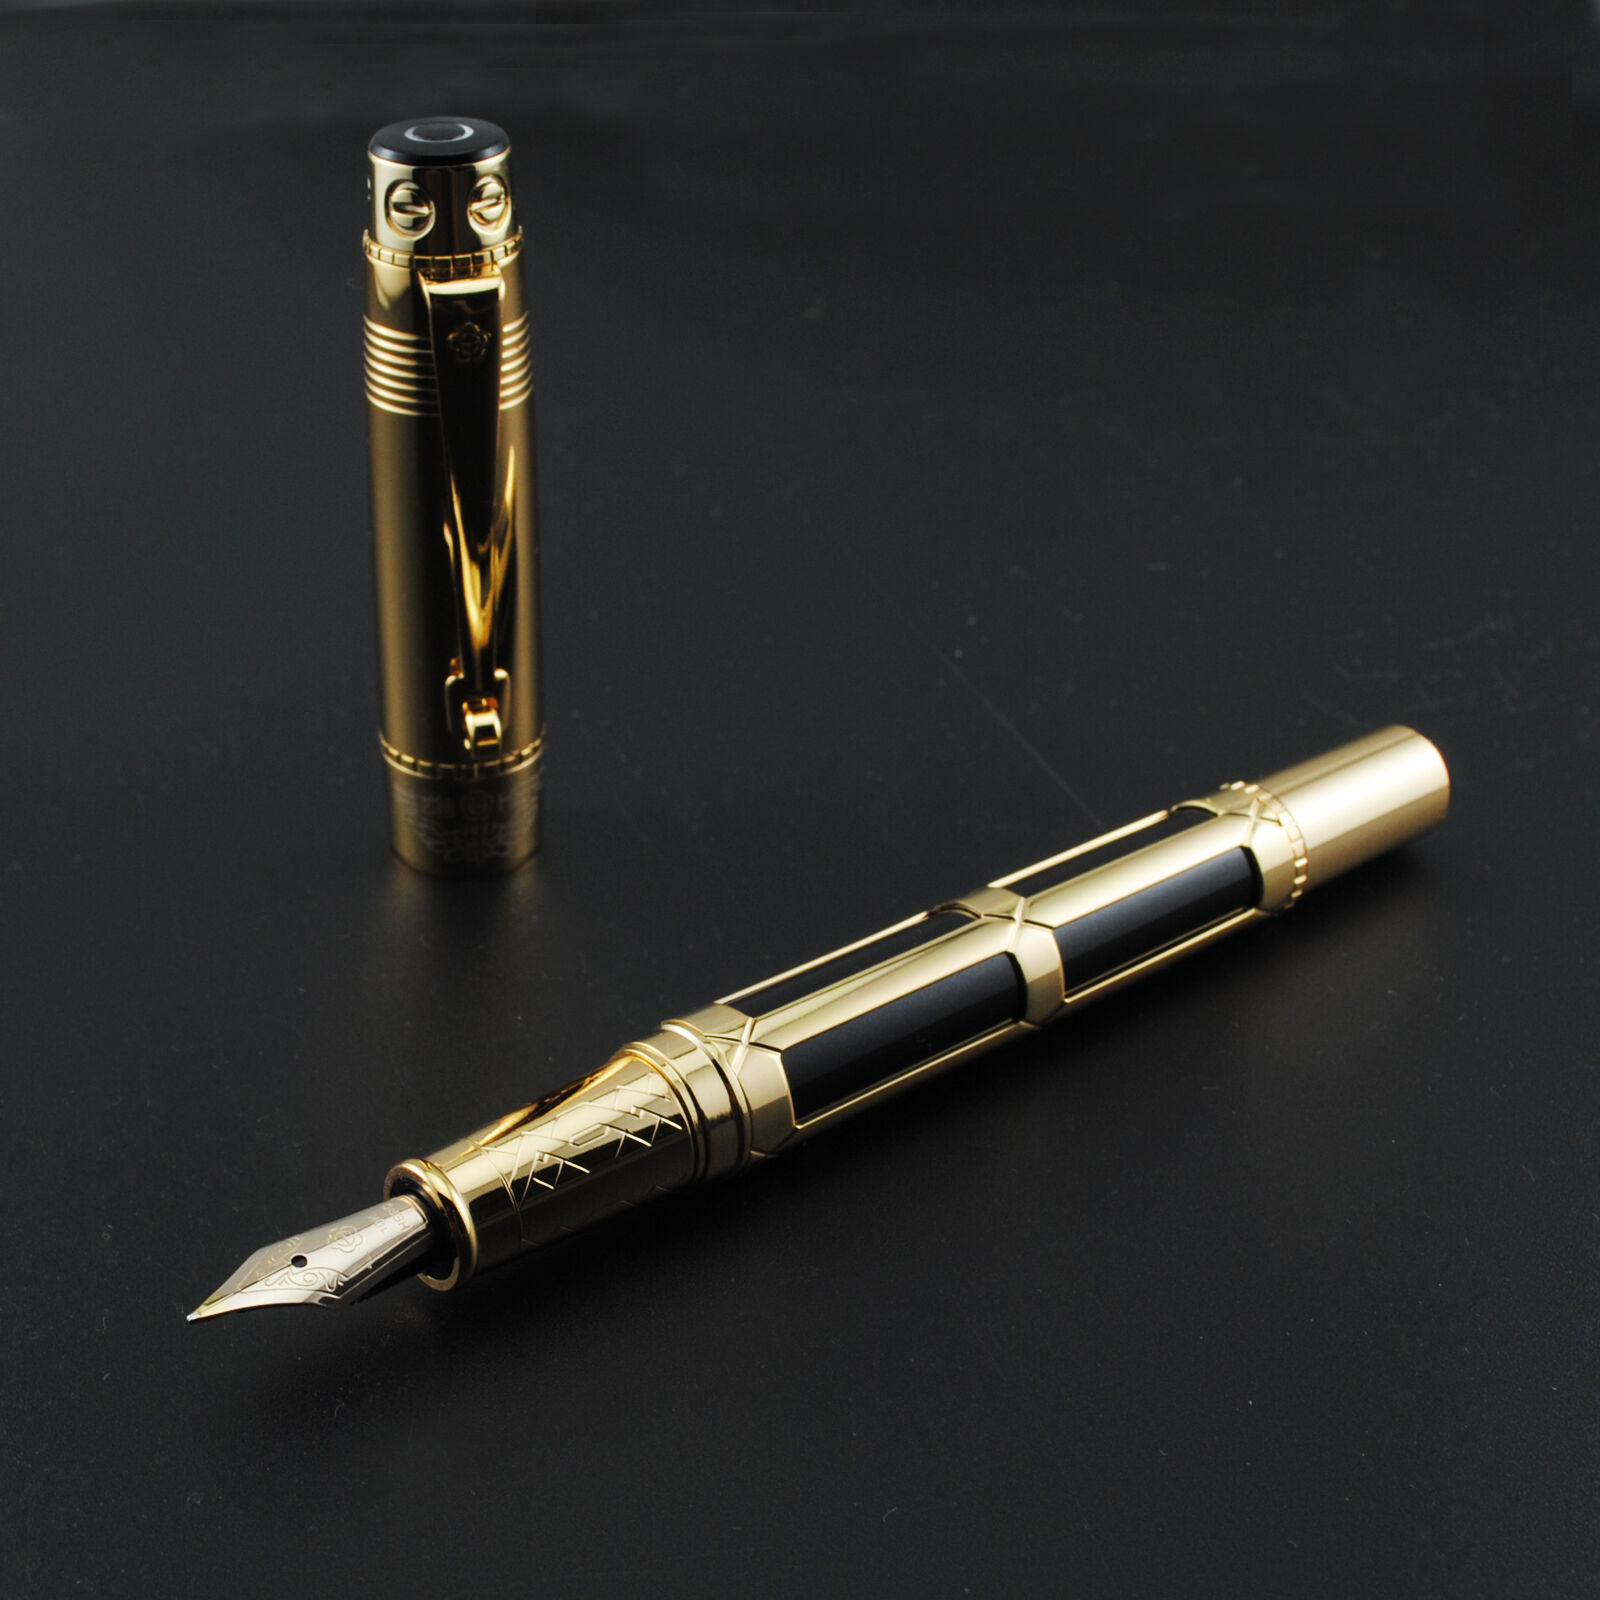 Old Stock Wing Sung Fountain Pen Metal Ink Pen Converter Filler F Nib Business Stationery Office School Supplies Writing Gift